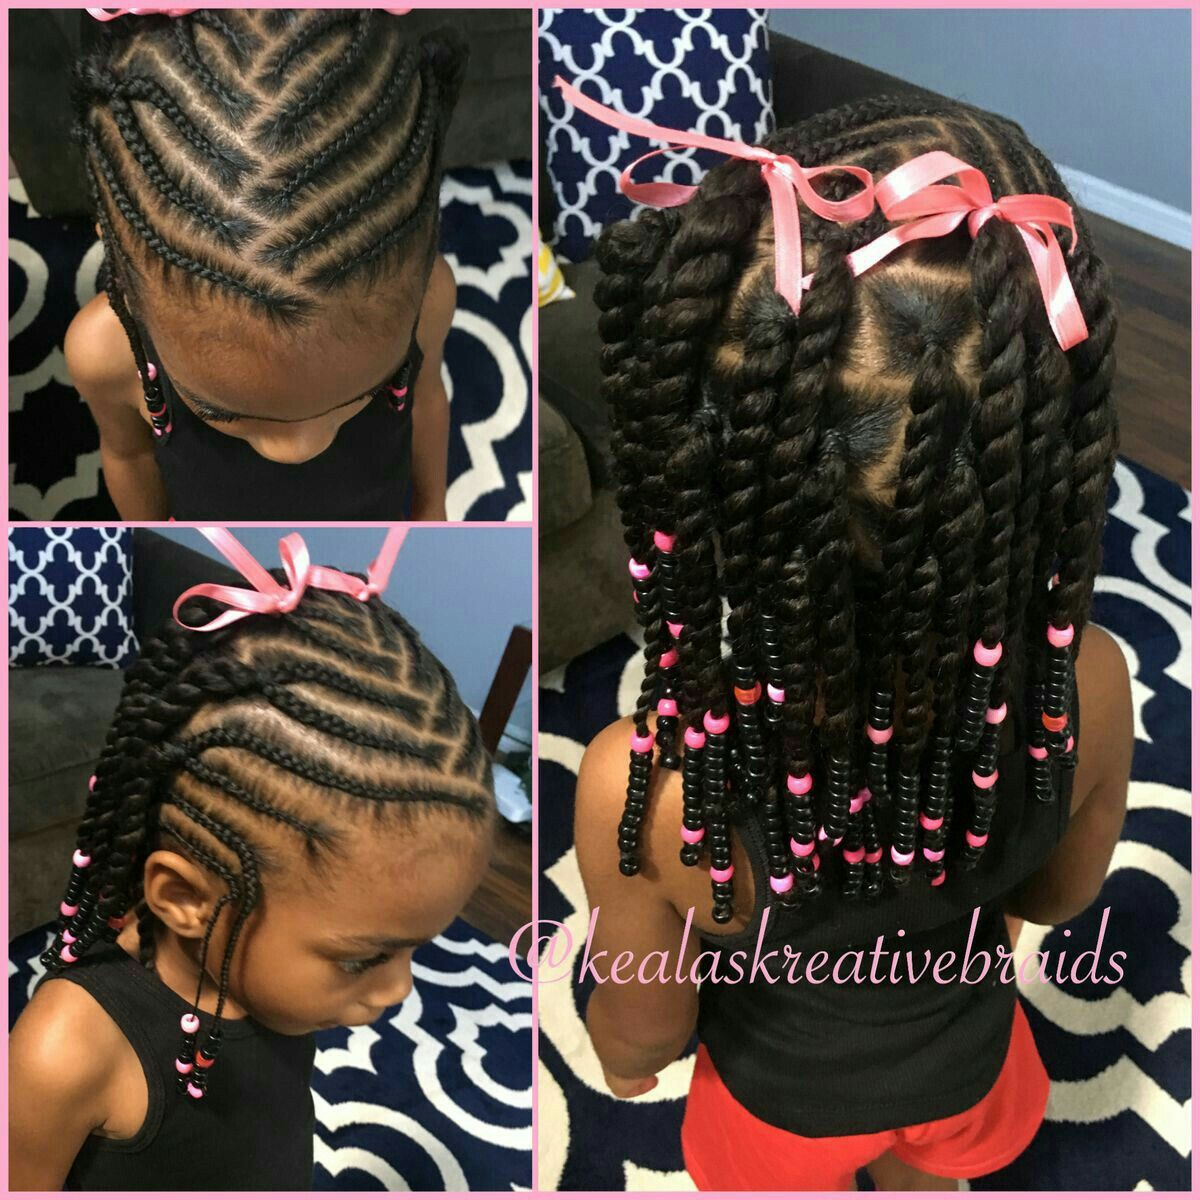 Re Graduation Natural Hairstyles For Kids Kids Braided Hairstyles Lil Girl Hairstyles